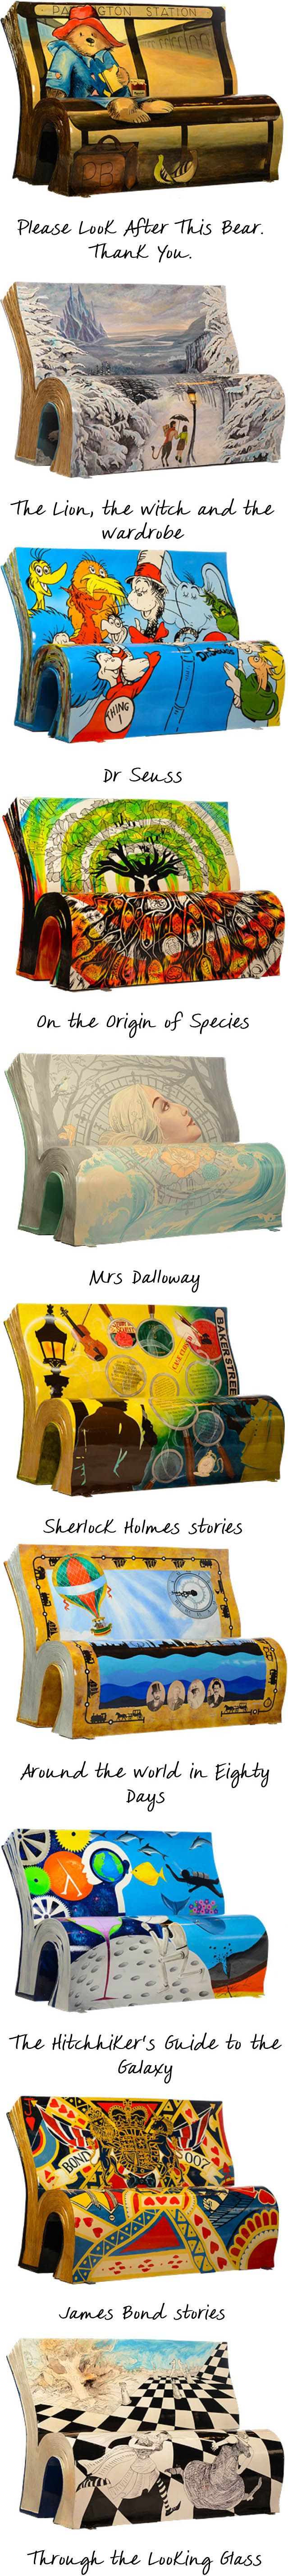 These are 10 of the 50 literary benches that the National Literary Trust and Wild in Art have put up all over London to celebrate reading. On Oct. 7, the benches will be auctioned off and all proceeds will go to the NLT.